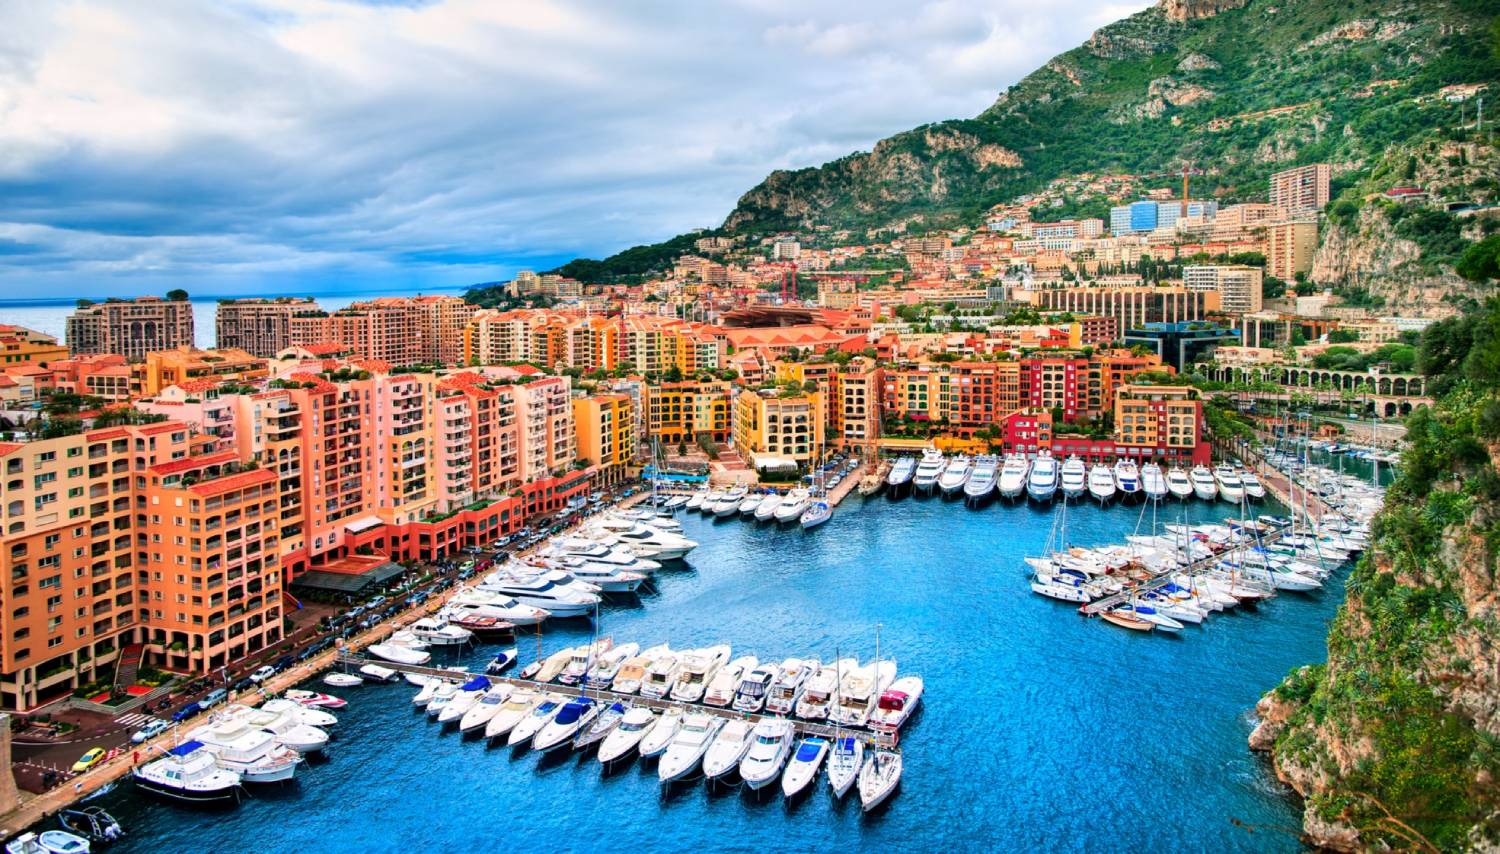 Monte Carlo - Things To Do In Nice